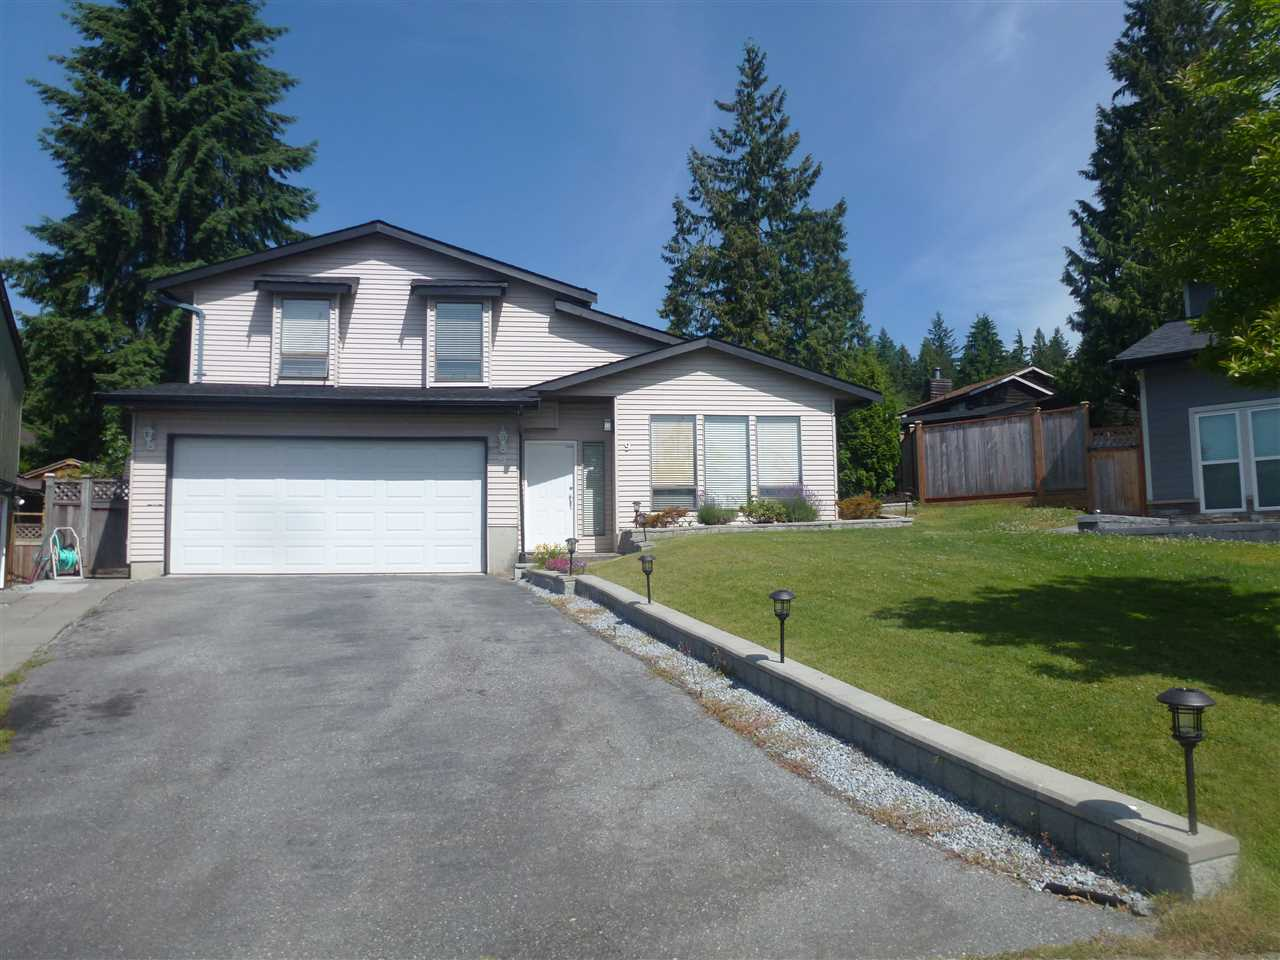 9 CAMPION COURT - MLS® # R2424649